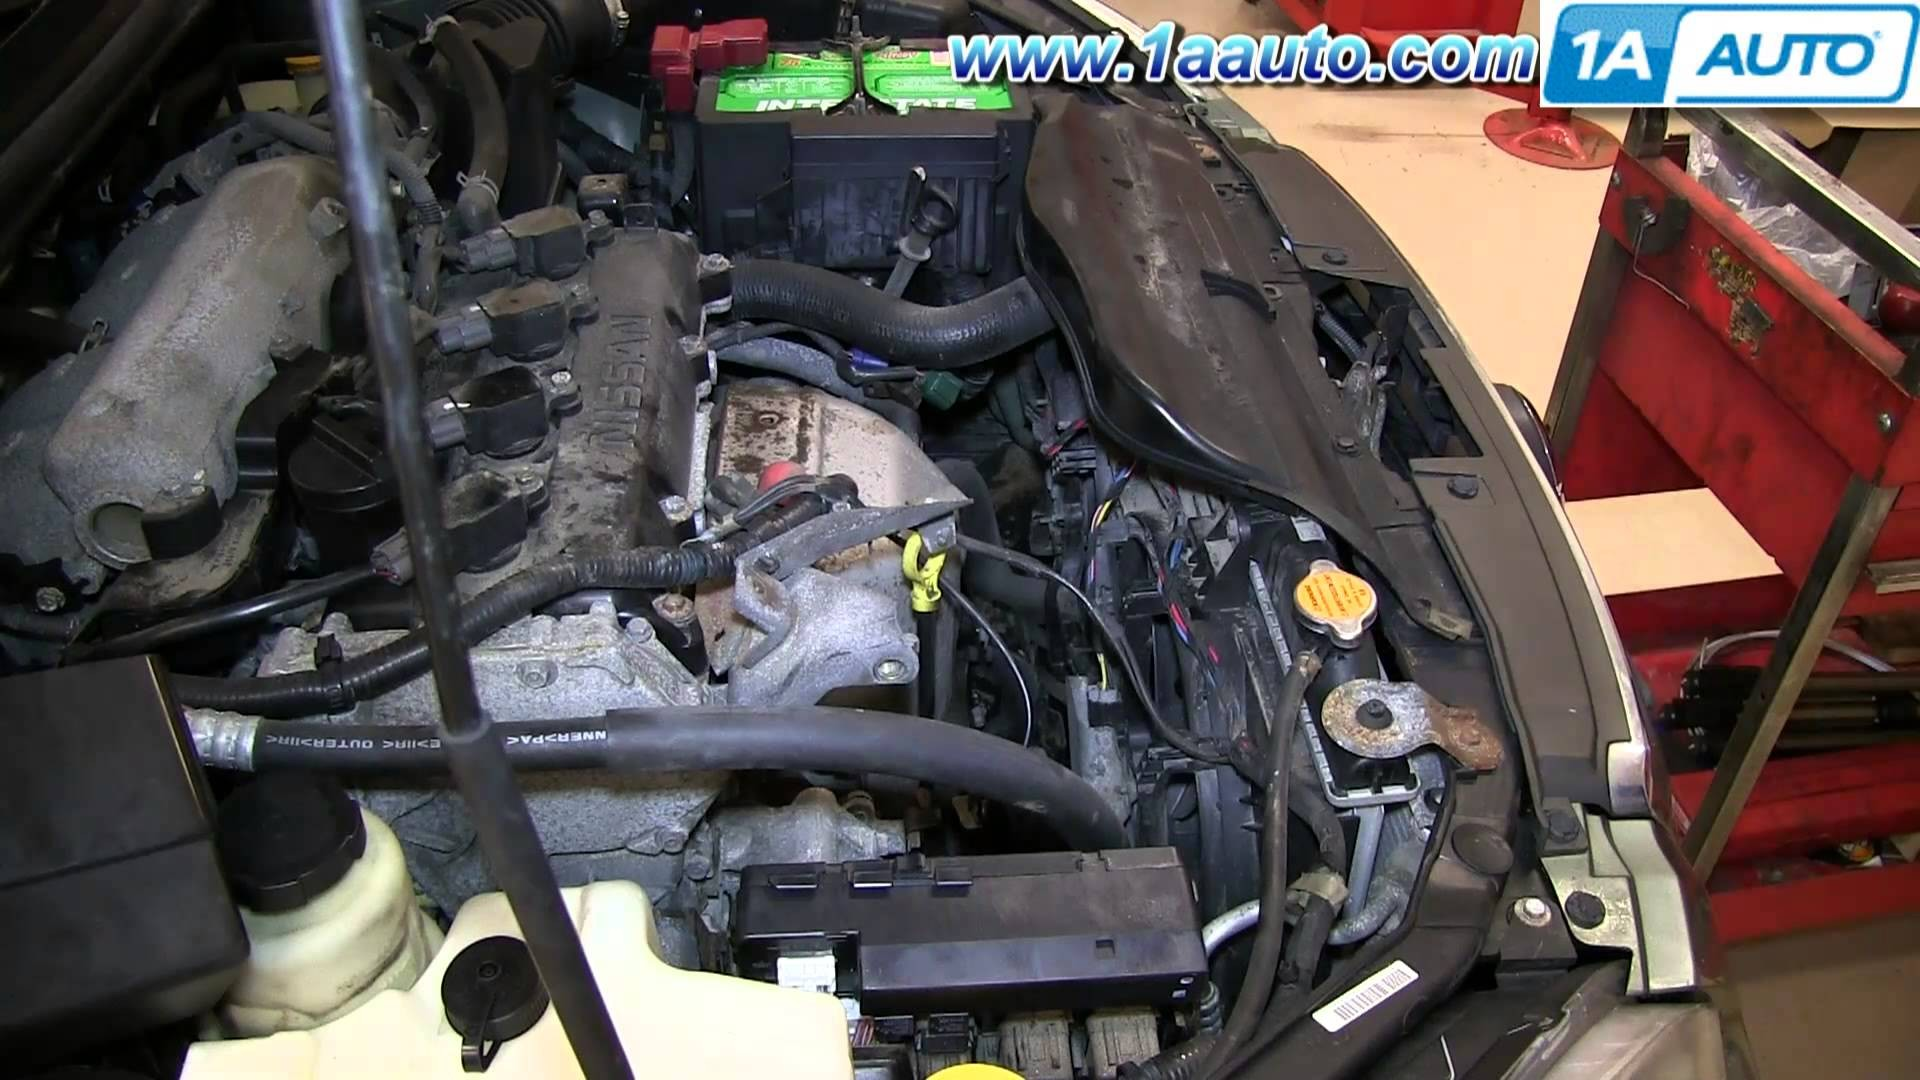 2008 Nissan Sentra Engine Diagram How To Install Replace 2002 Water Pump 06 2 5l Altima